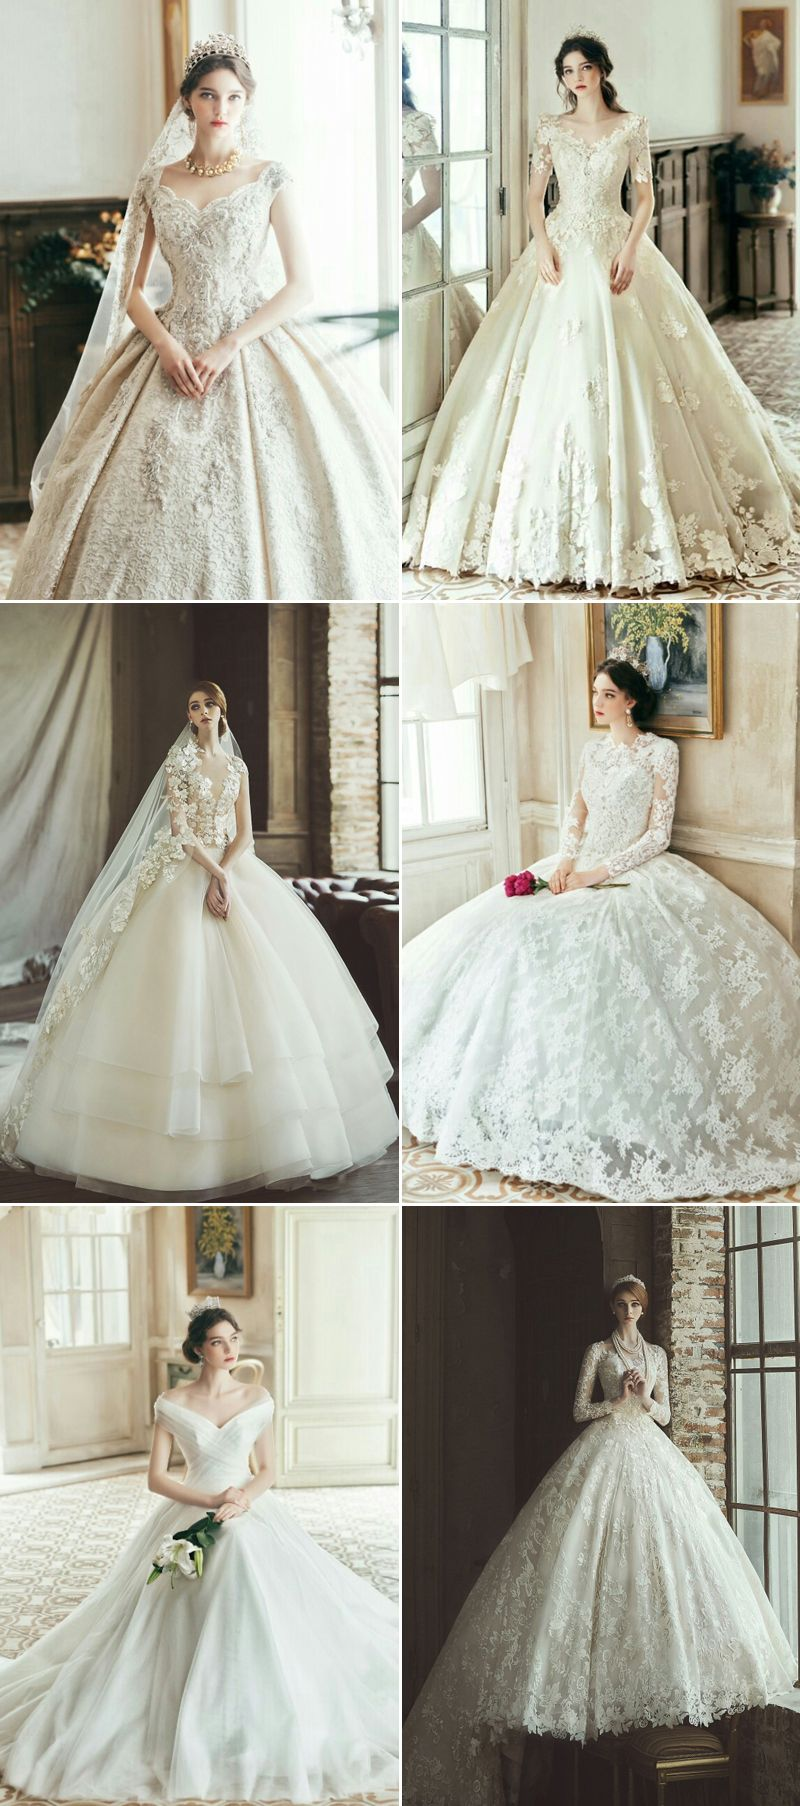 37 Jaw Droppingly Beautiful Gowns For A Ballroom Wedding Praise Wedding Beautiful Gowns Wedding Dresses Beautiful Wedding Dresses